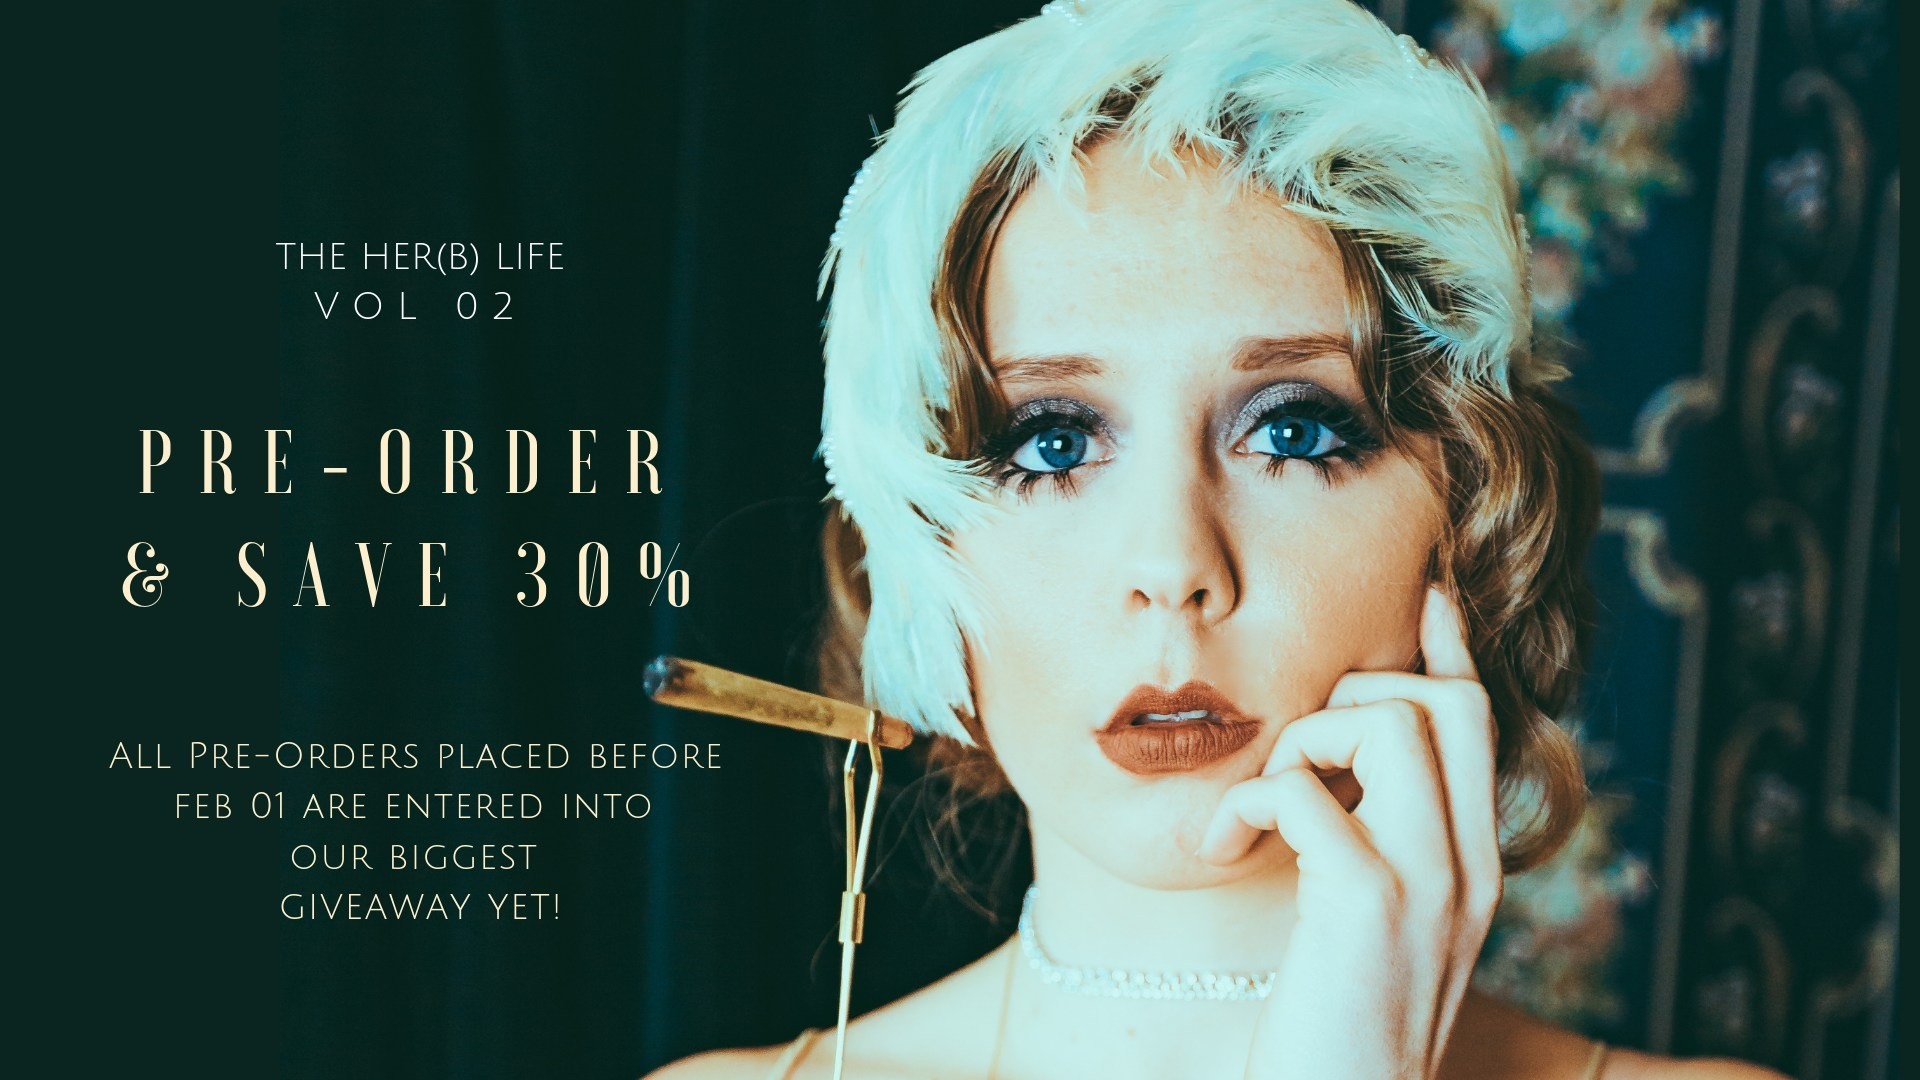 Vol 02 of Canada's leading cannabis culture publication, The Her(B) Life is available for pre-ordering now. Shopherblife.com/vol02 (CNW Group/The Her(B) Life)